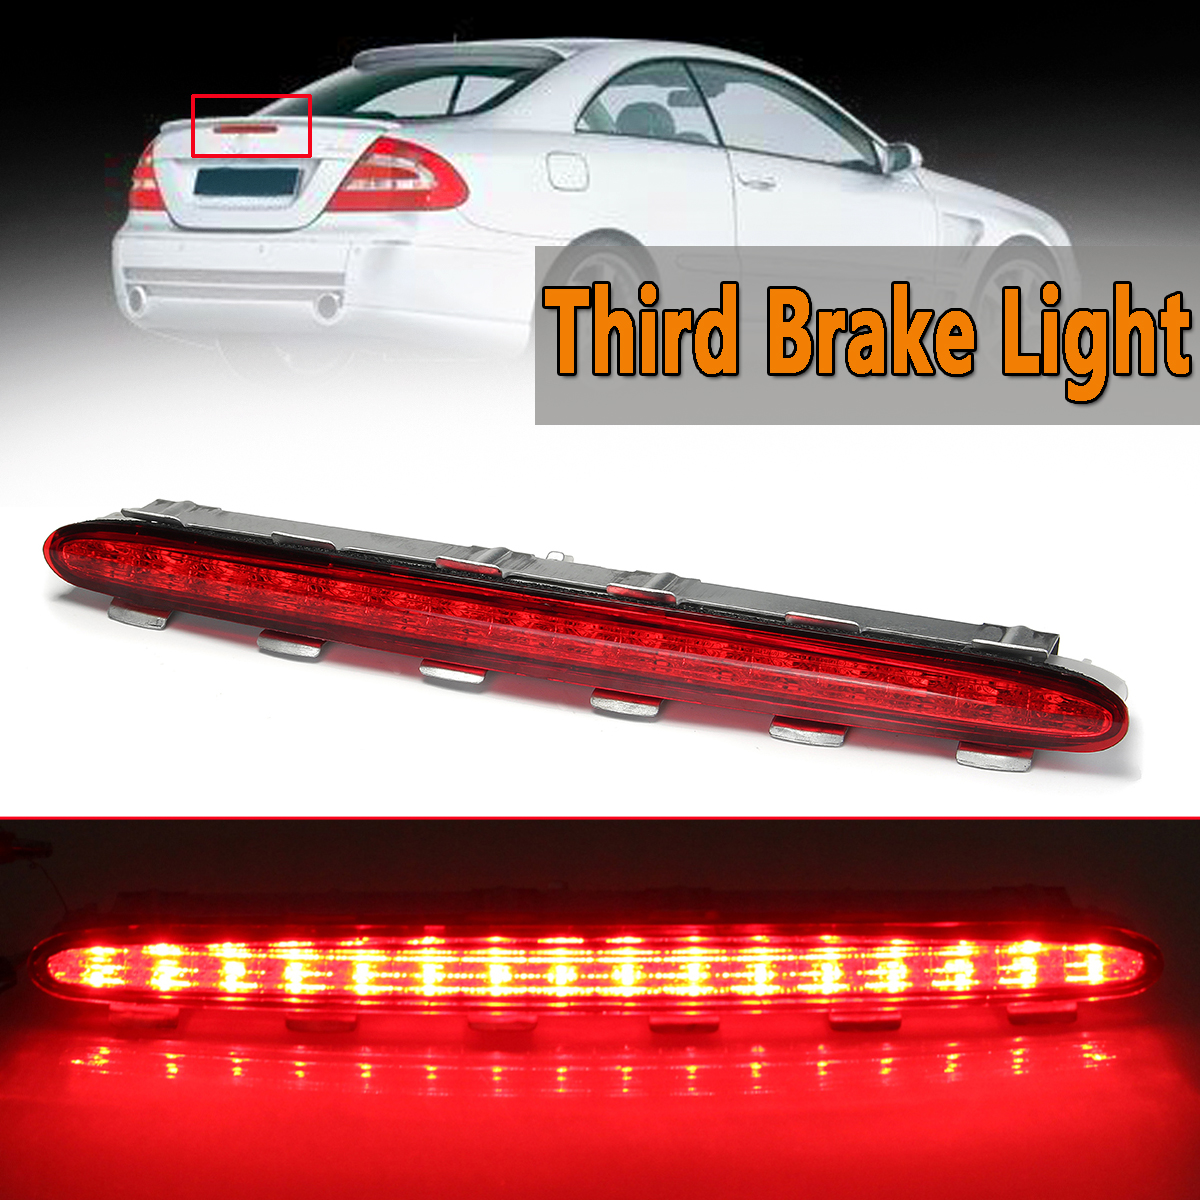 LED Car Rear Third Brake Lights Tail Lamp For Benz For Mercedes CLK W209 2002-2009 Car Styling Rear Roof Warning Light Red veithdia 3152 polarized men sunglasses mirror green lense vintage sun glasses eyewear accessories